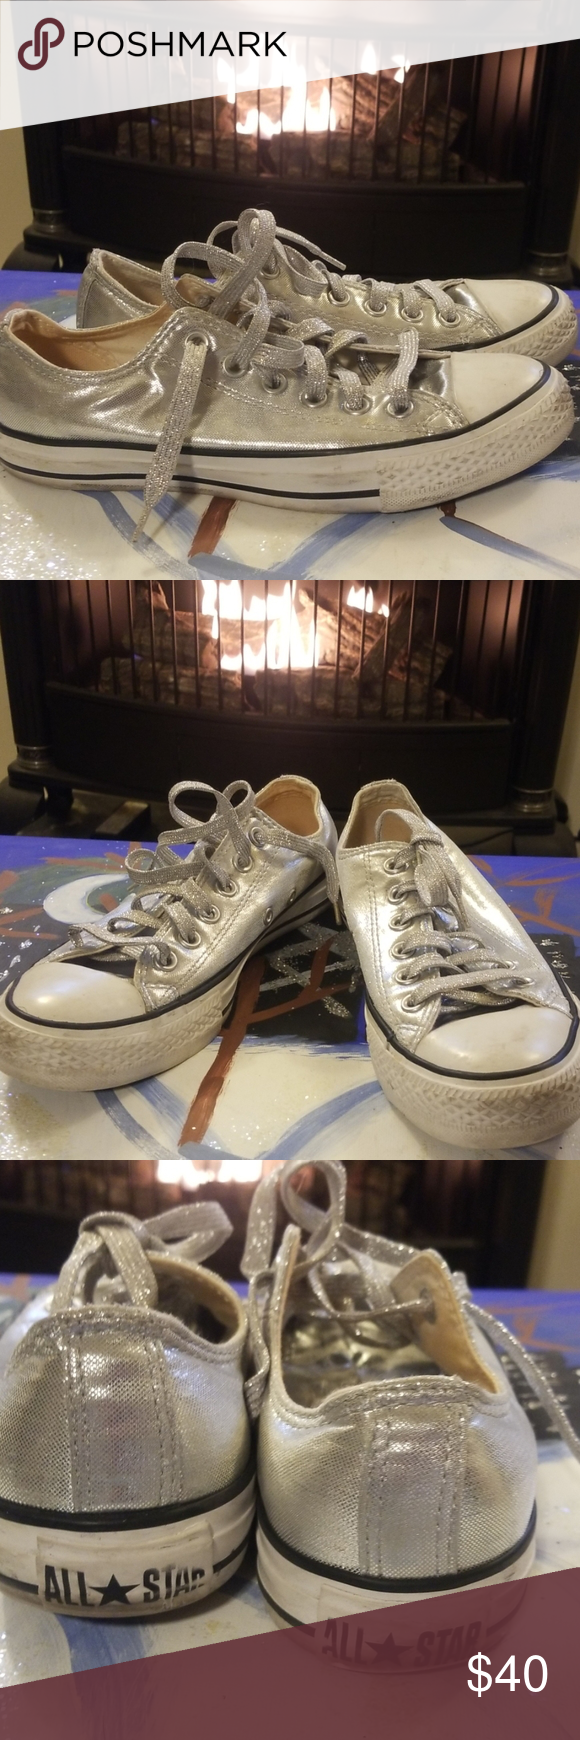 Gentle uses Silver Converse in 2020